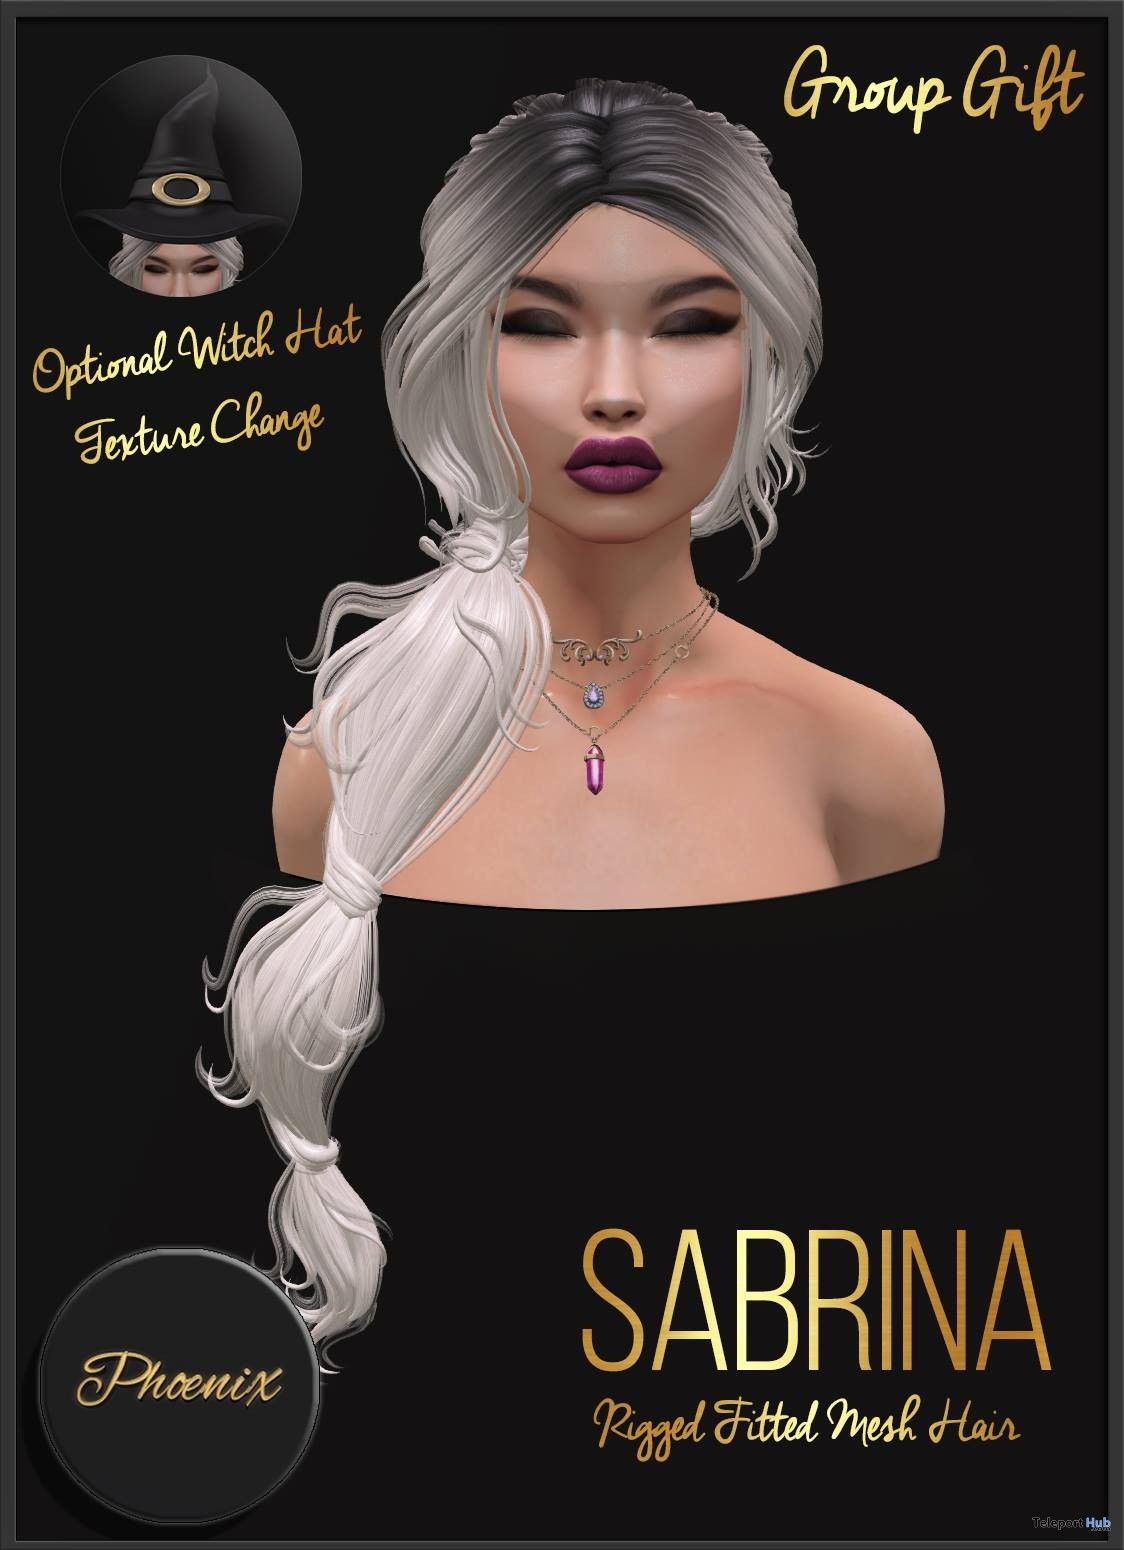 Sabrina Hair Halloween 2018 Group Gift by Phoenix Hair - Teleport Hub - teleporthub.com